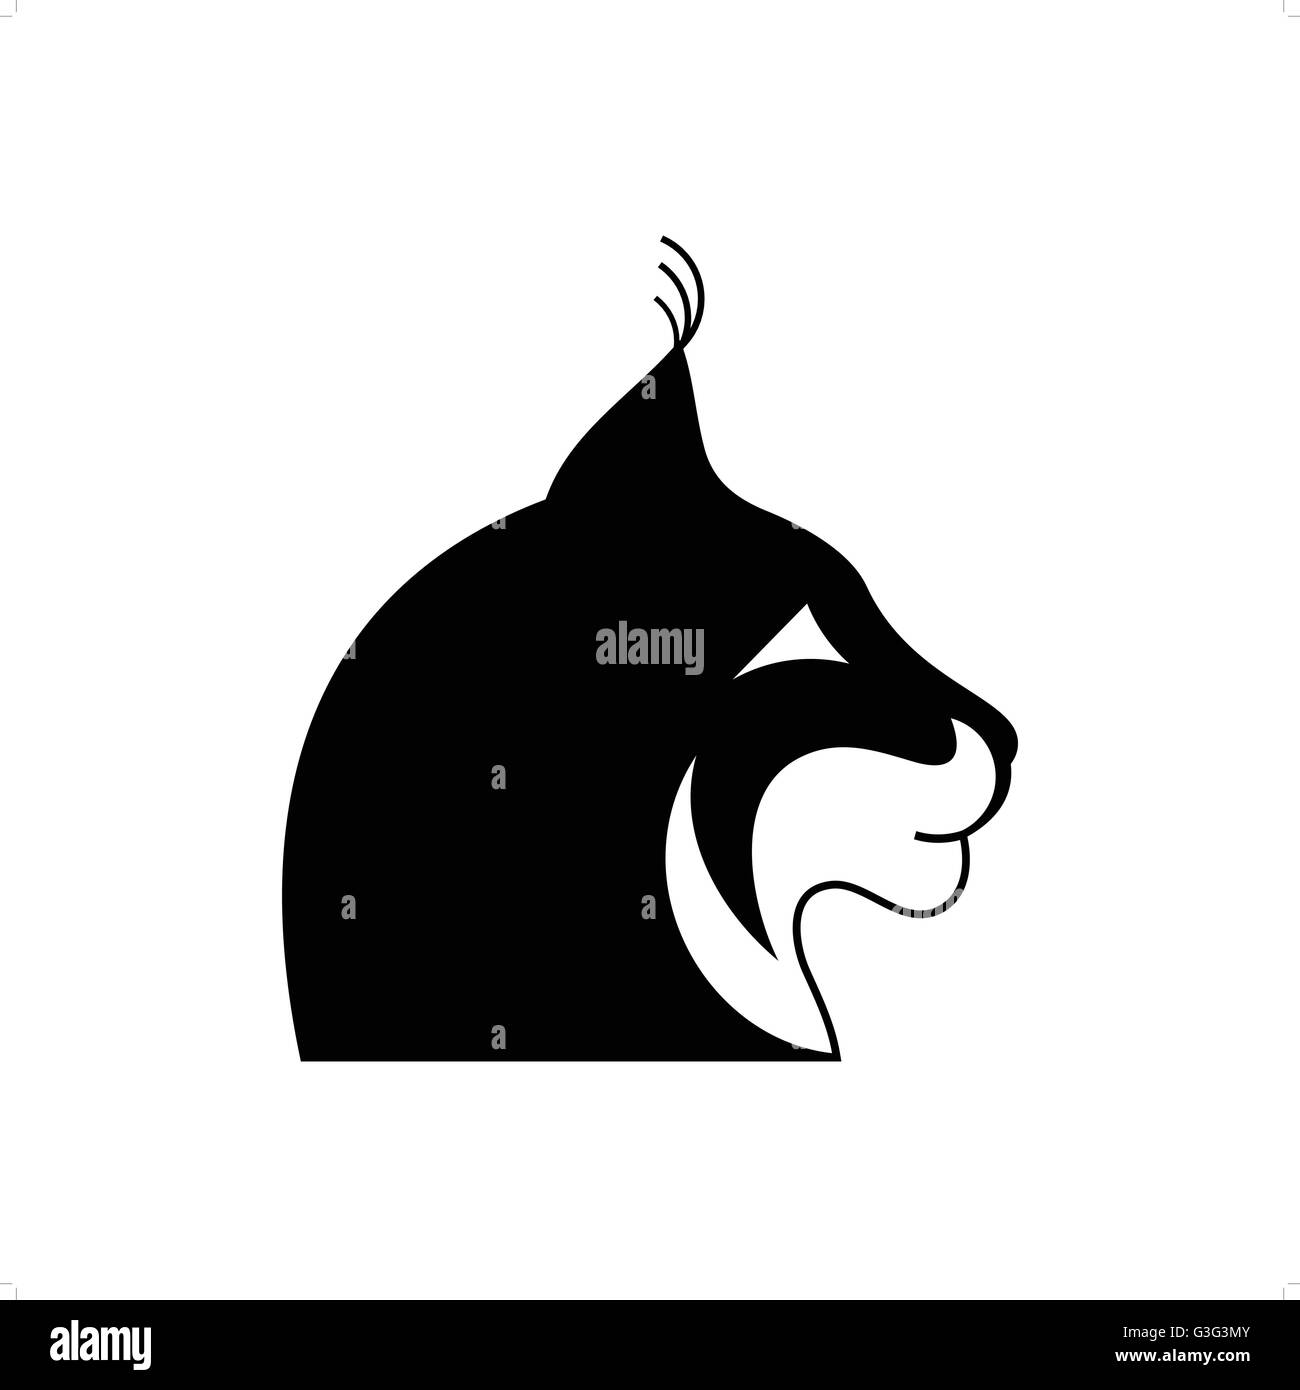 Stylized black and white lynx head tattoo vector illustration isolated on white background. - Stock Vector